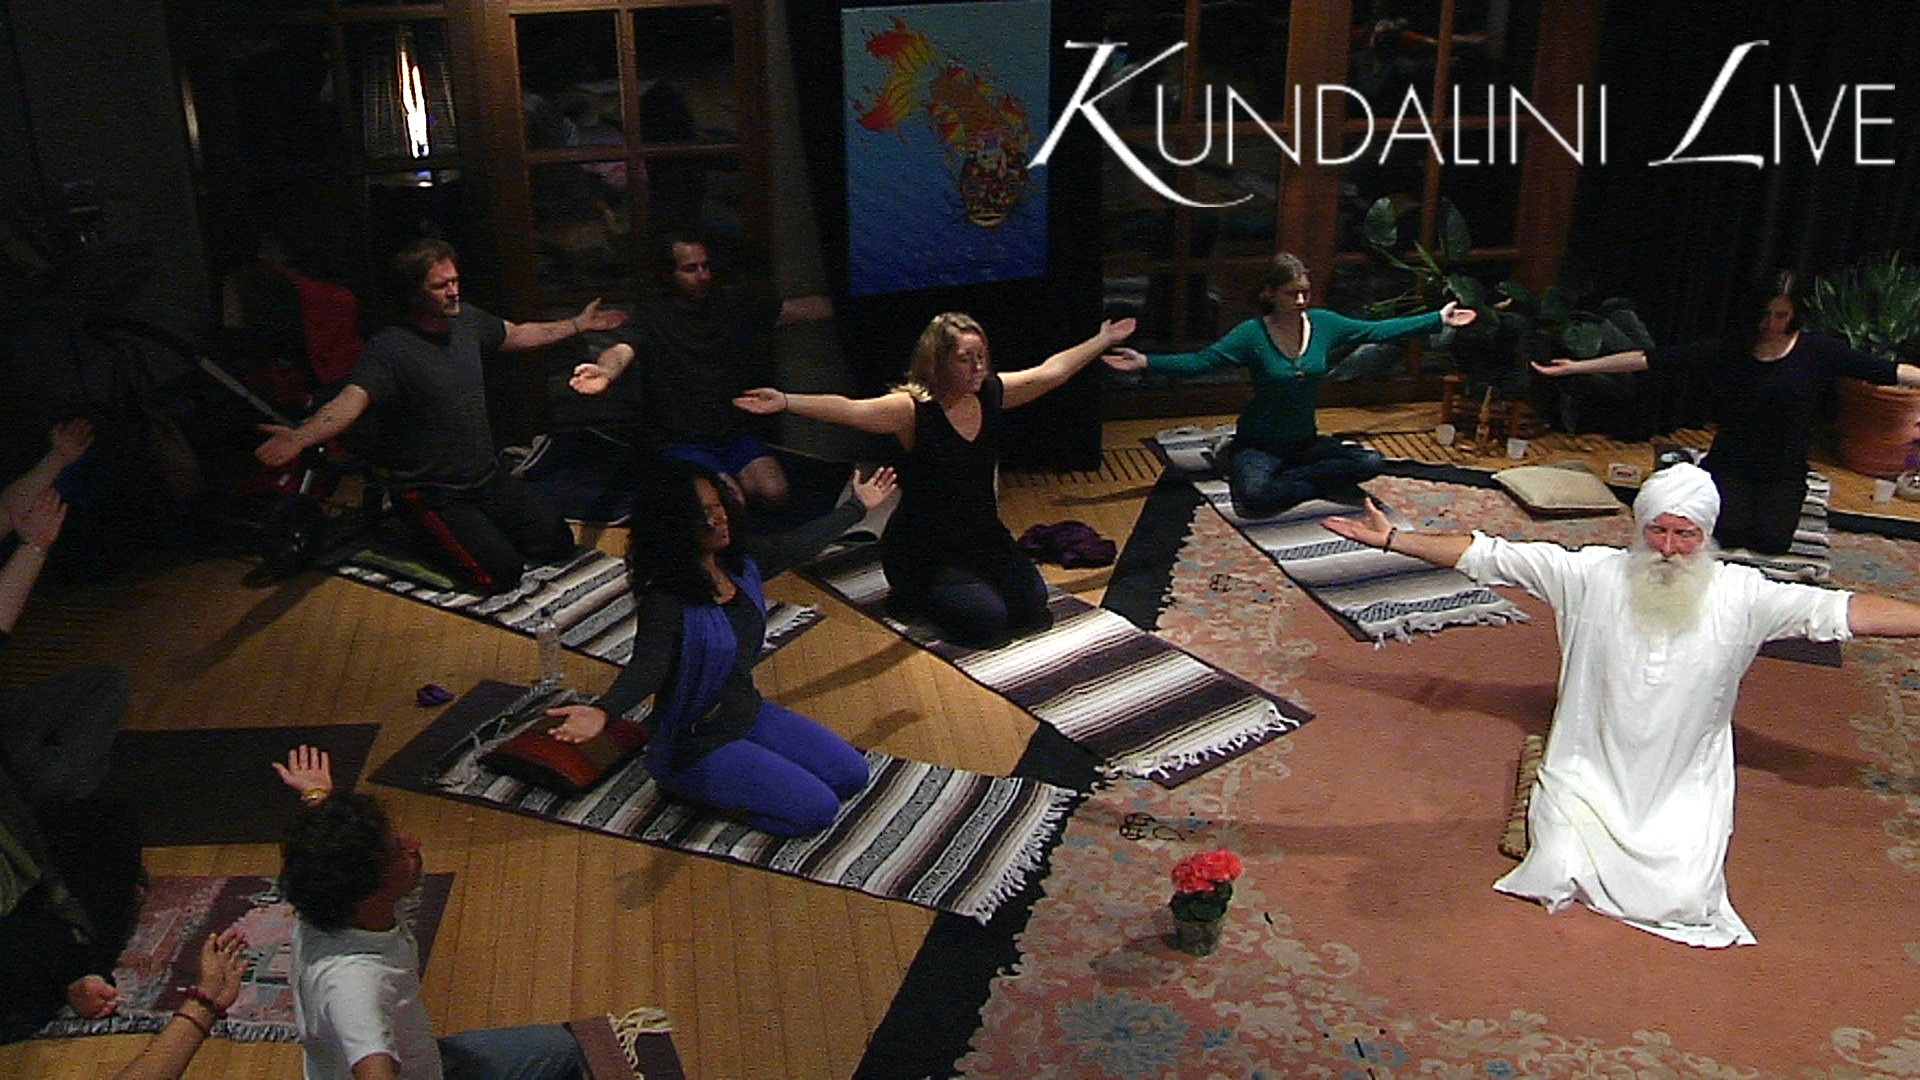 large group yoga workshop learning meditation together with breath of fire for happiness-and-less-pain